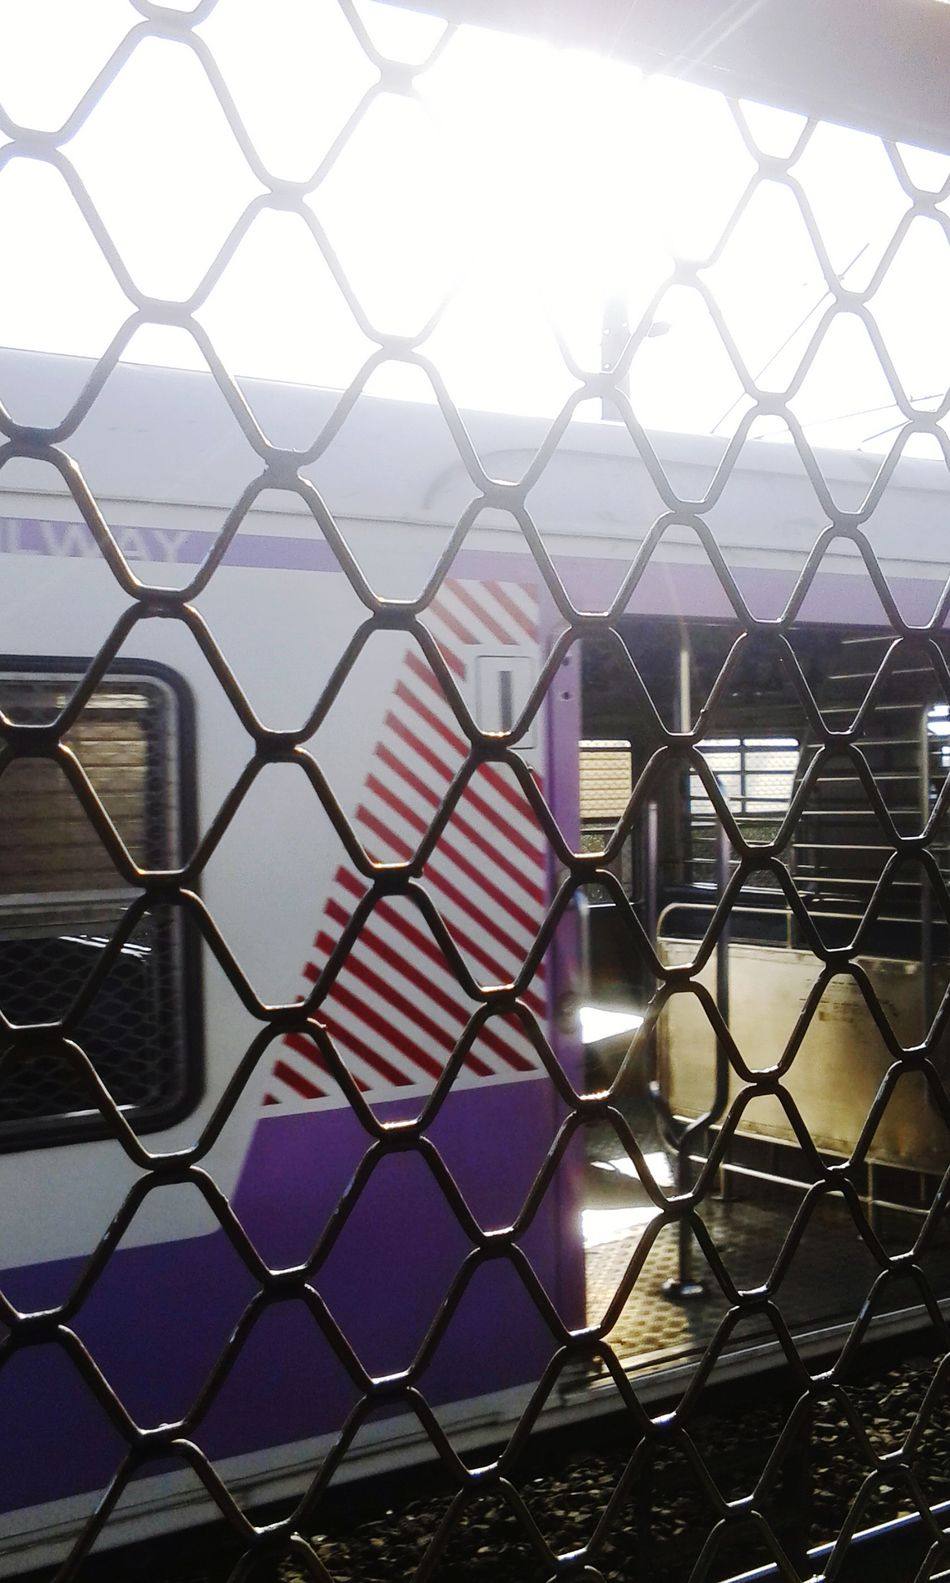 Picture of another local train CLICKED BY ME through the window i was travelling in. Local Western Line Trains as means of public transportation. Sunlight Through Windows From A Train Window Local Transportation Awesome_captures Behind The Grill VariousColors GoodMorning⛅ Sunlight ☀ Moving Fast Sunlight, Shades And Shadows Reflection_collection Trainphotography Light And Shadow Purple ♥ Shadowgraphy Metal Structure Random Shots Sunrise Train_of_our_world Trains_worldwide Trains & Railroad Click Click 📷📷📷 by AwesomeAisha_24 in Mumbai Maharashtra India